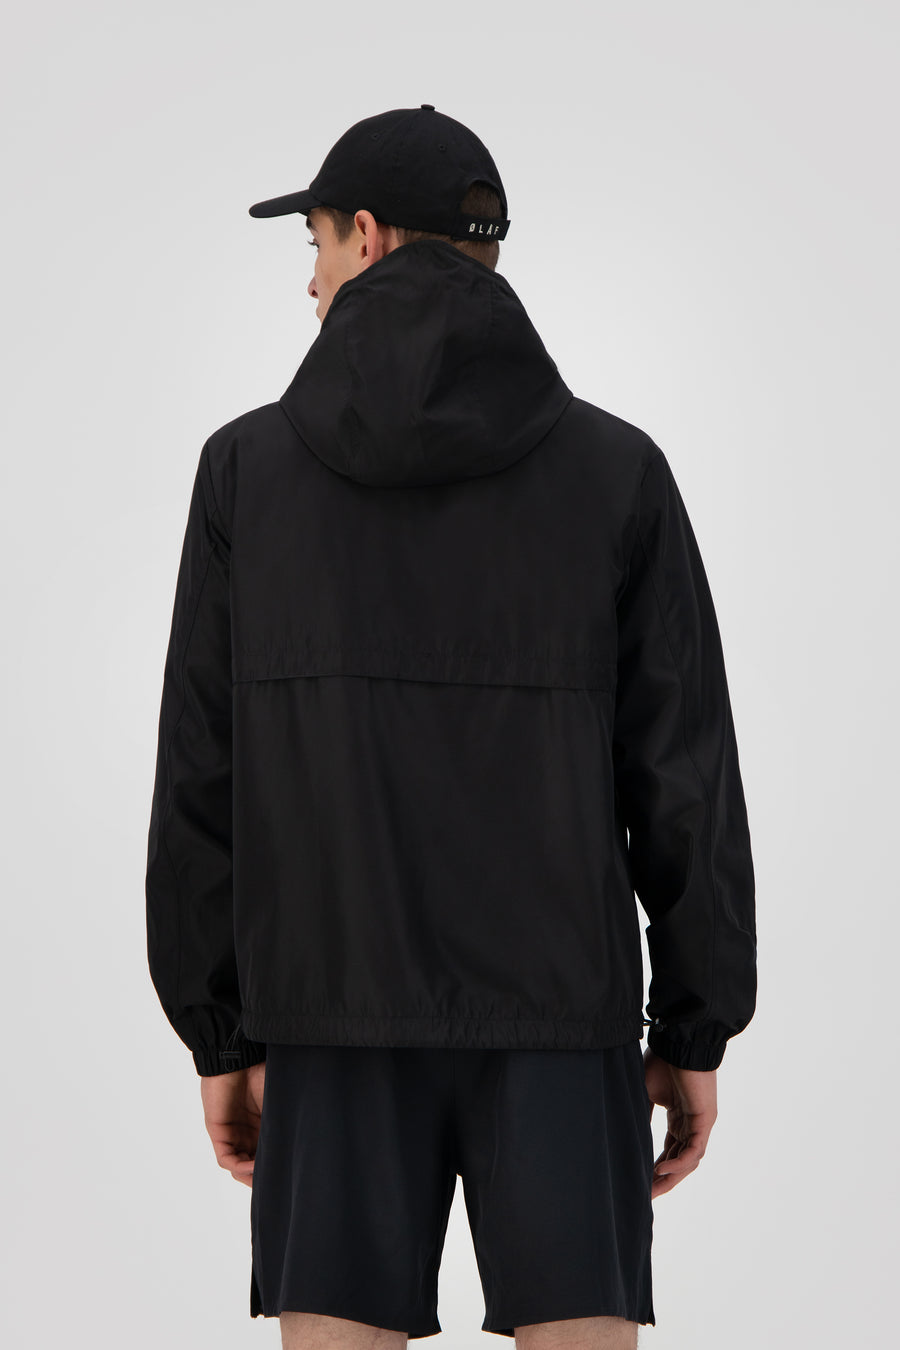 ØLÅF Zip Jacket - Black